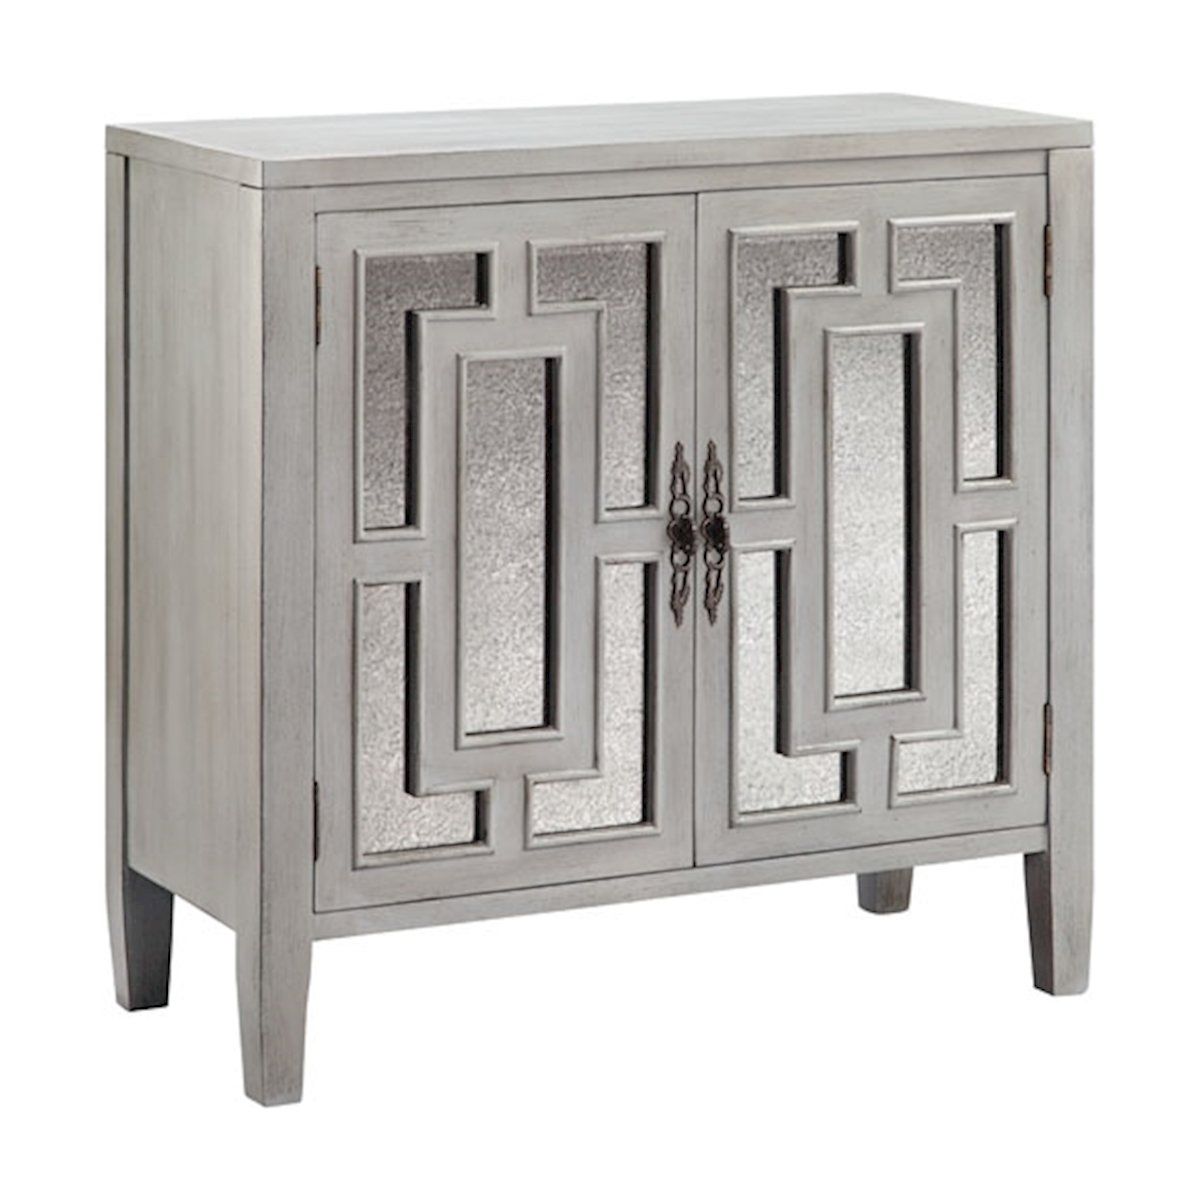 foyer cabinet door accent table with glass doors shaped outdoor furniture cover off white end tables tiffany look alike lamps turquoise placemats and napkins mid century side